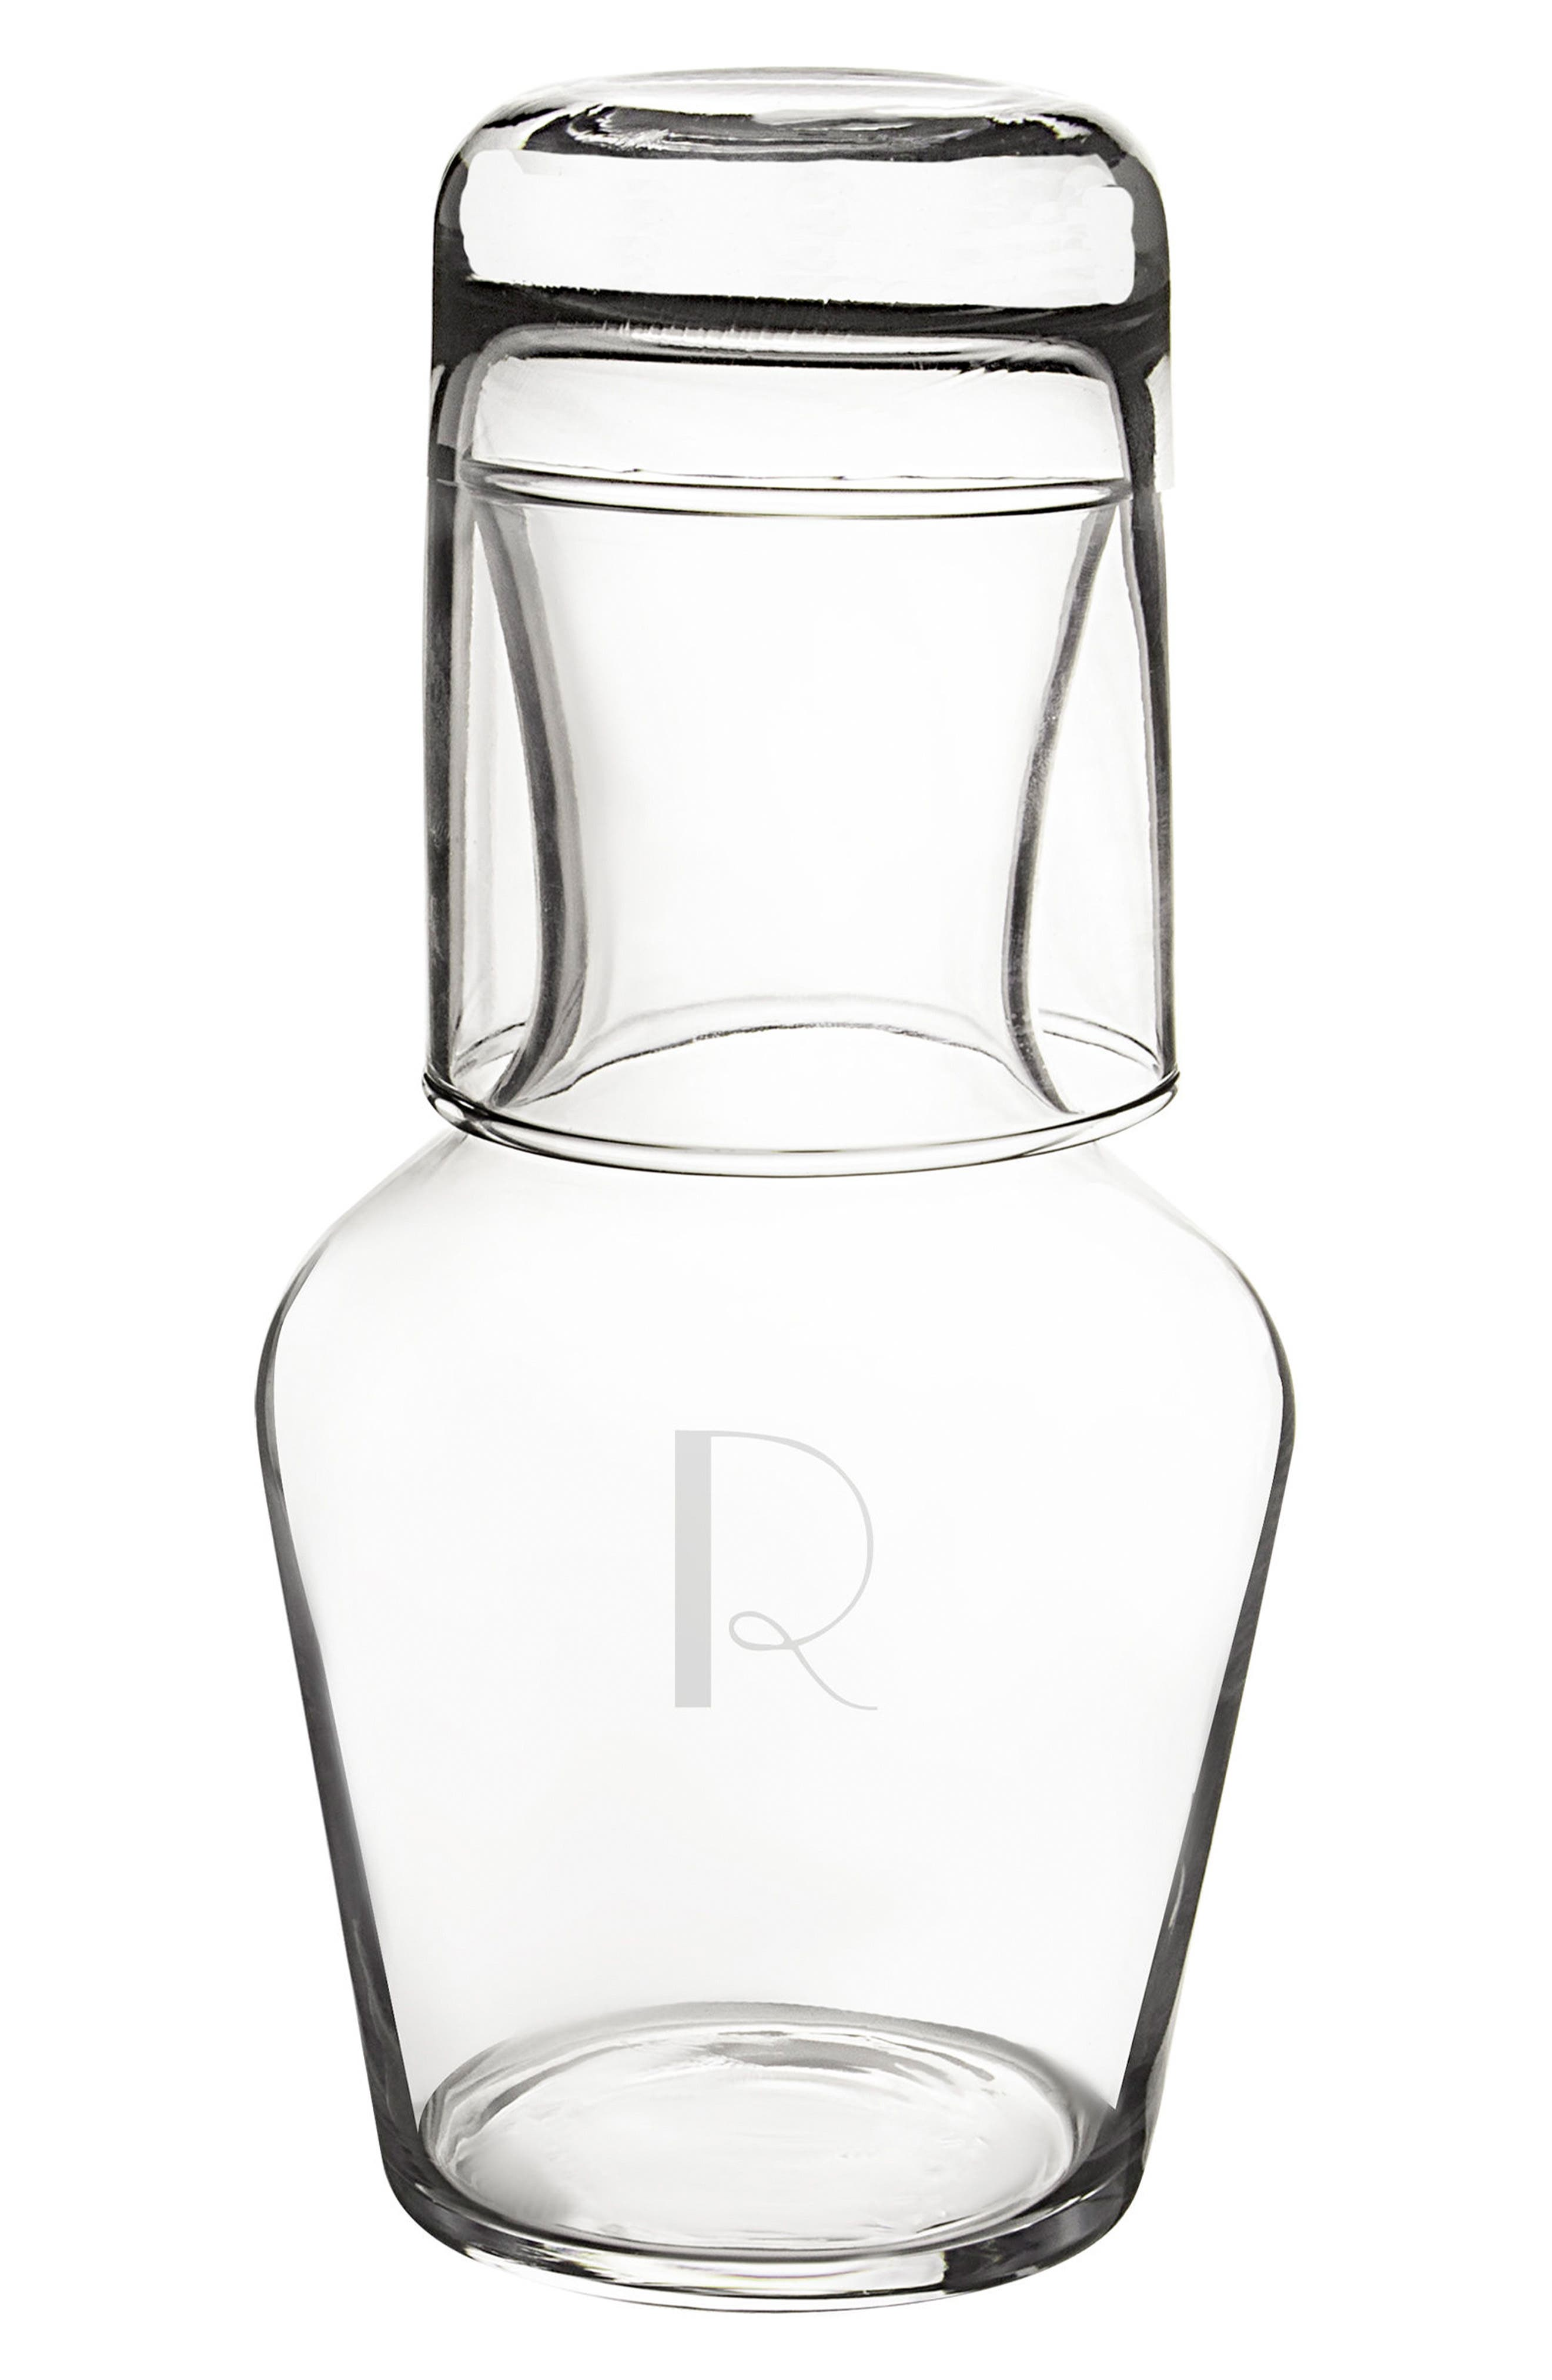 Main Image - Cathy's Concepts Bedside Water Carafe & Glass Set